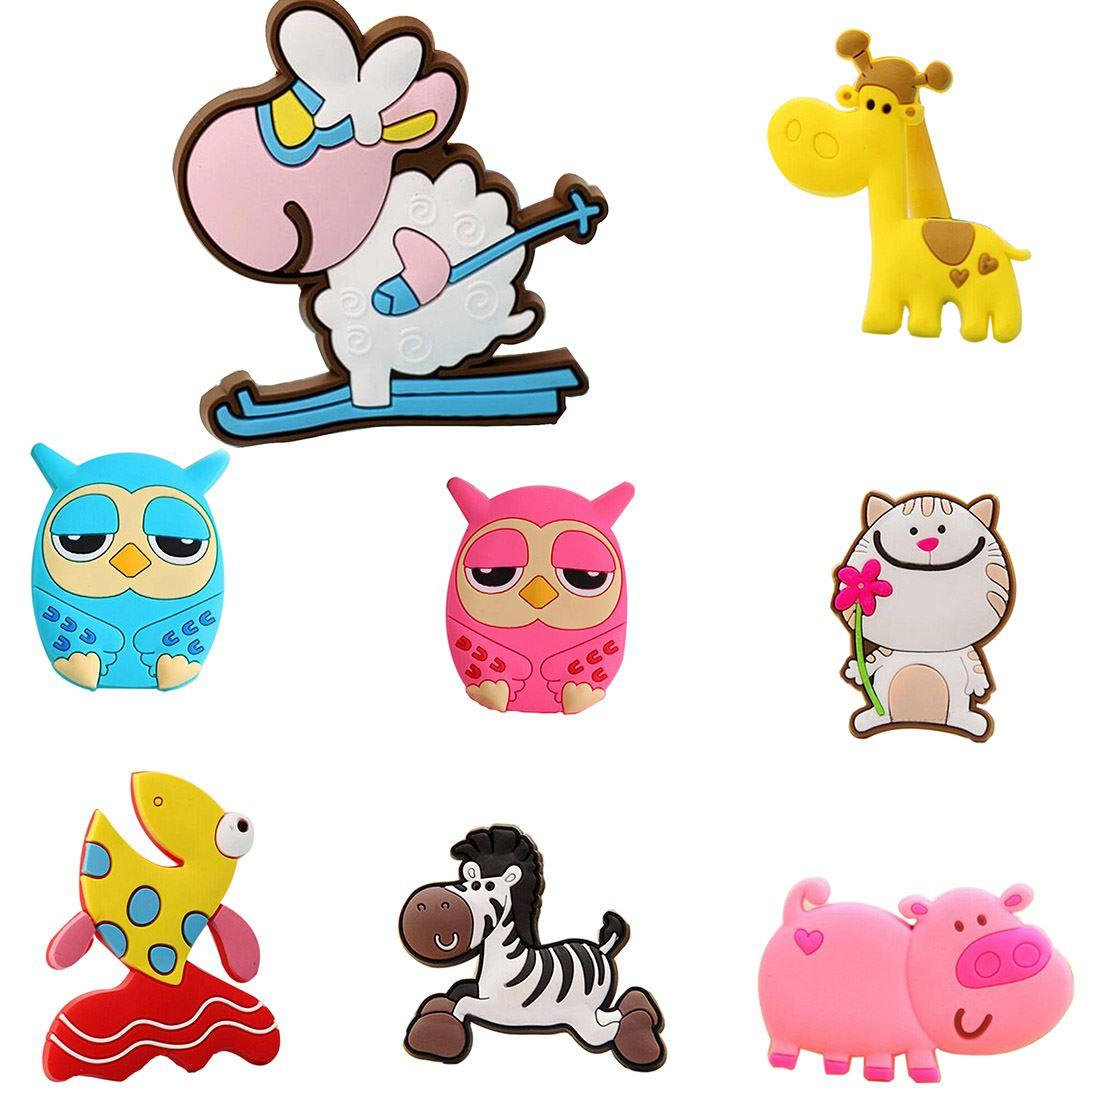 10pcs/lot Creative Giraffe Owl Cat Pig Fish Sheep Fridge Magnets for Kids Small Size Silicon Gel Magnetic fridge Magnet Animal Magnets